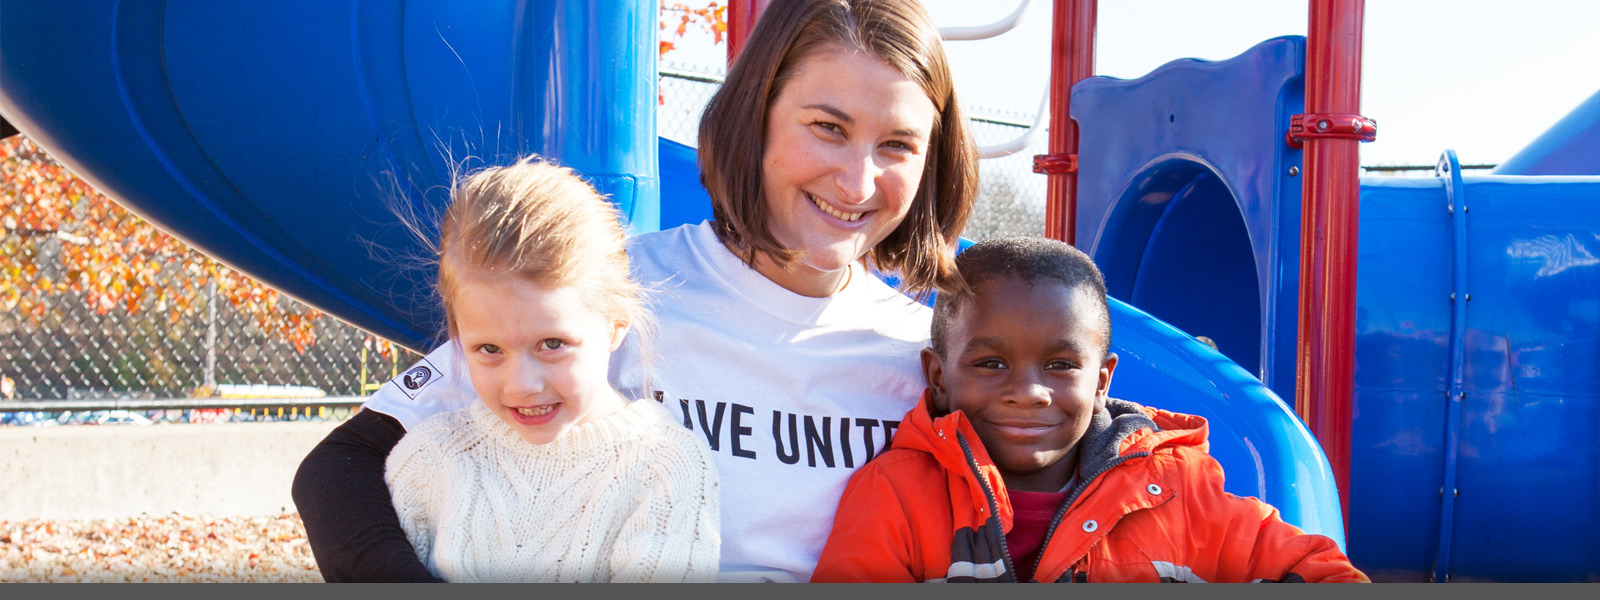 As the largest non-governmental funding source of local health and human care programs, the Heart of Illinois United Way invests in critical education, financial stability and health programs that impact thousands of lives throughout central Illinois.